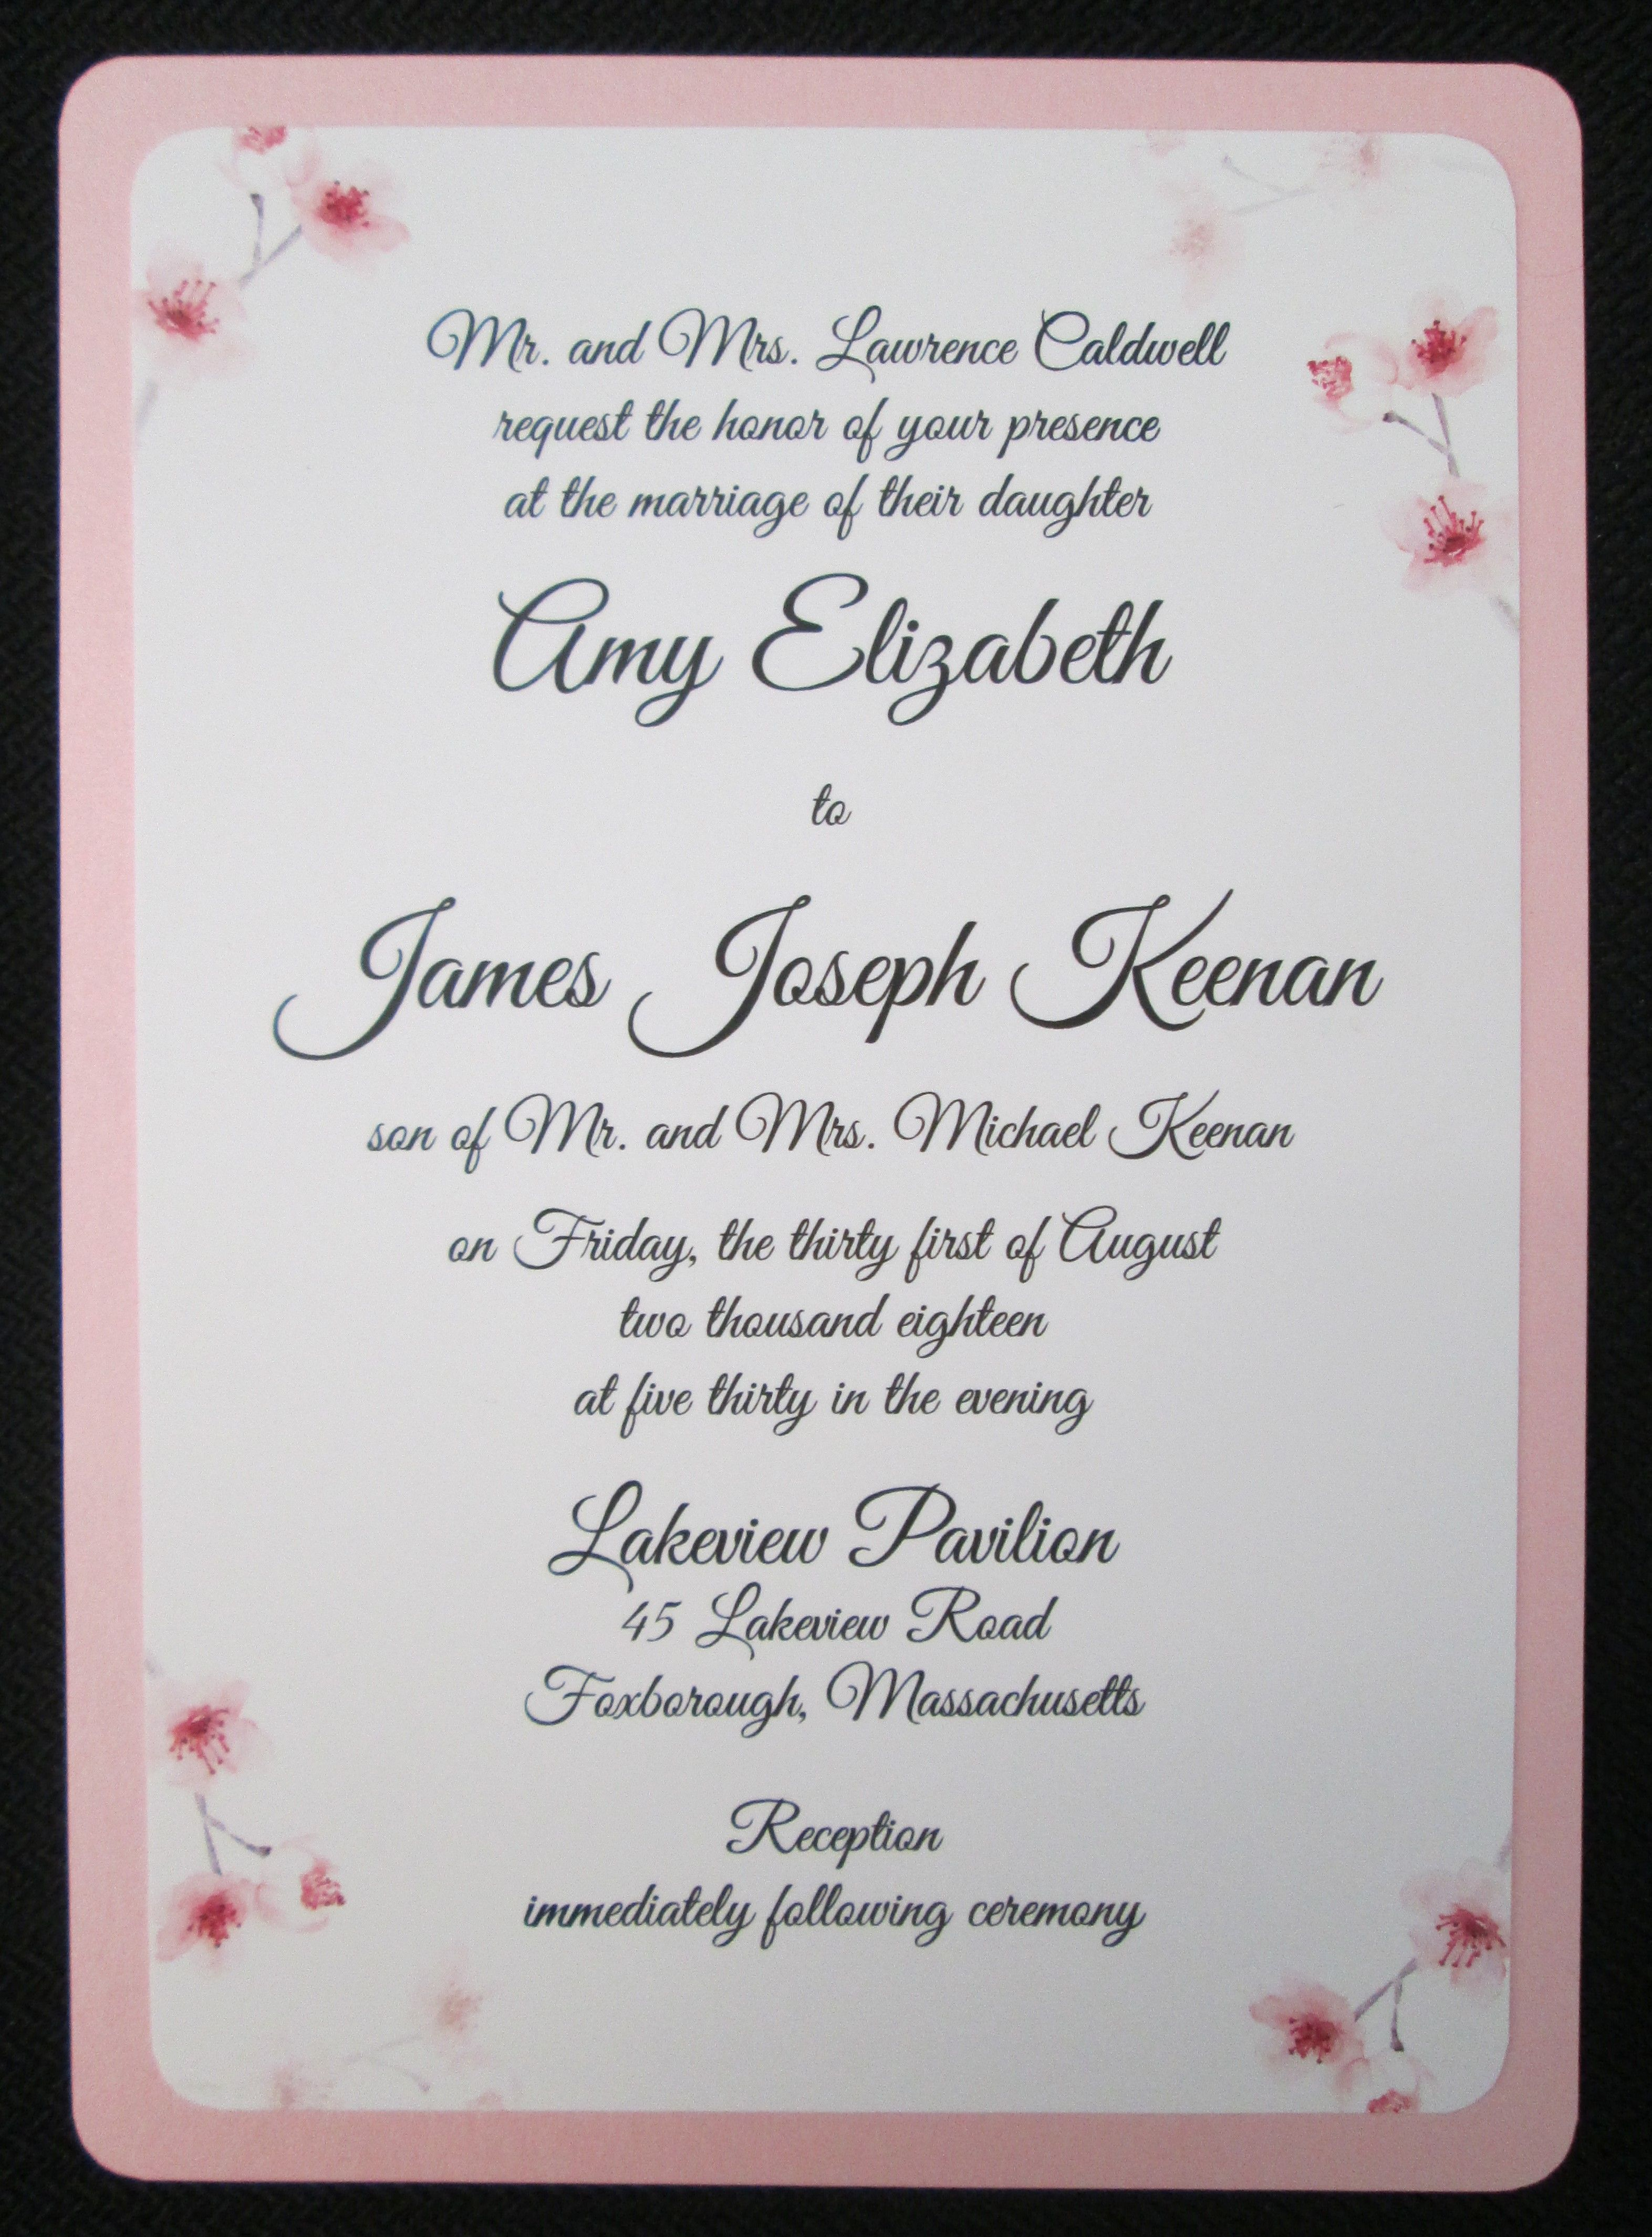 layer invitation with flower design wedding invitations